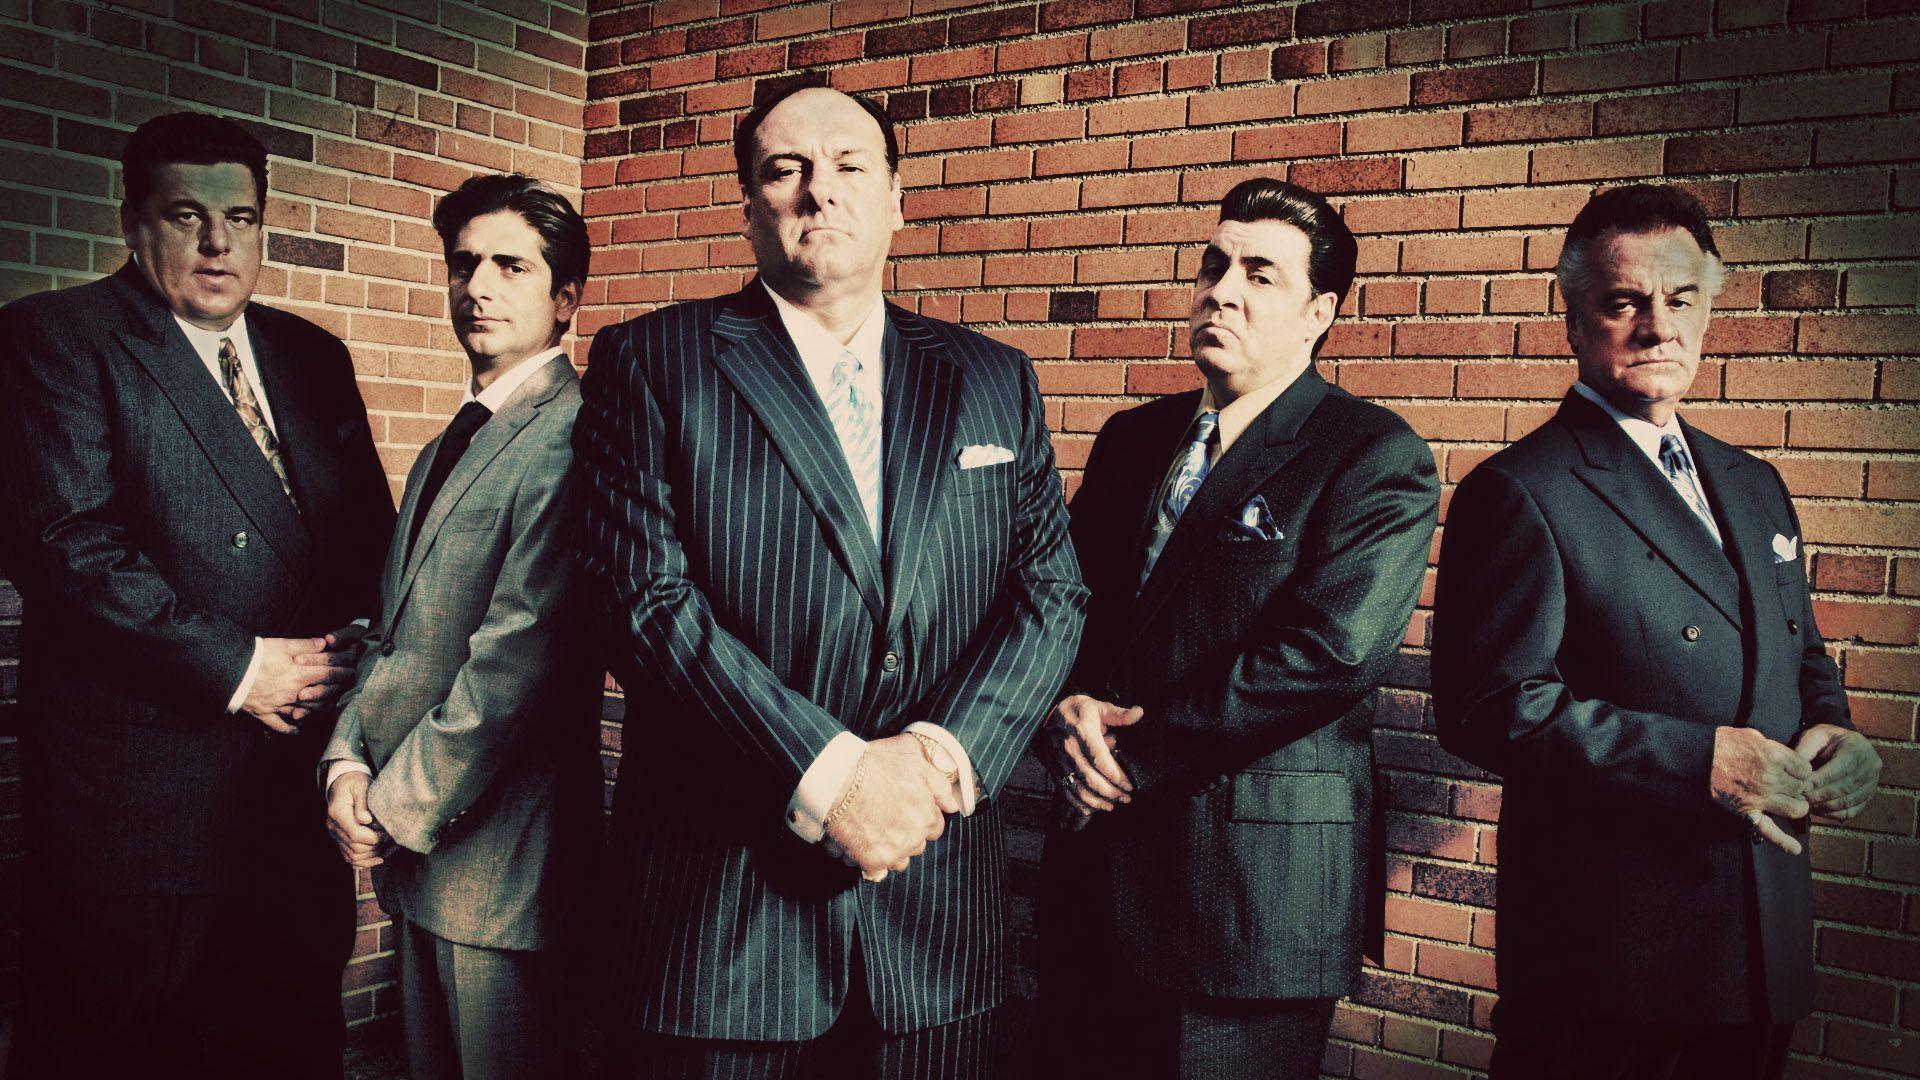 The sopranos wallpapers wallpaper cave - Sopranos wallpaper ...